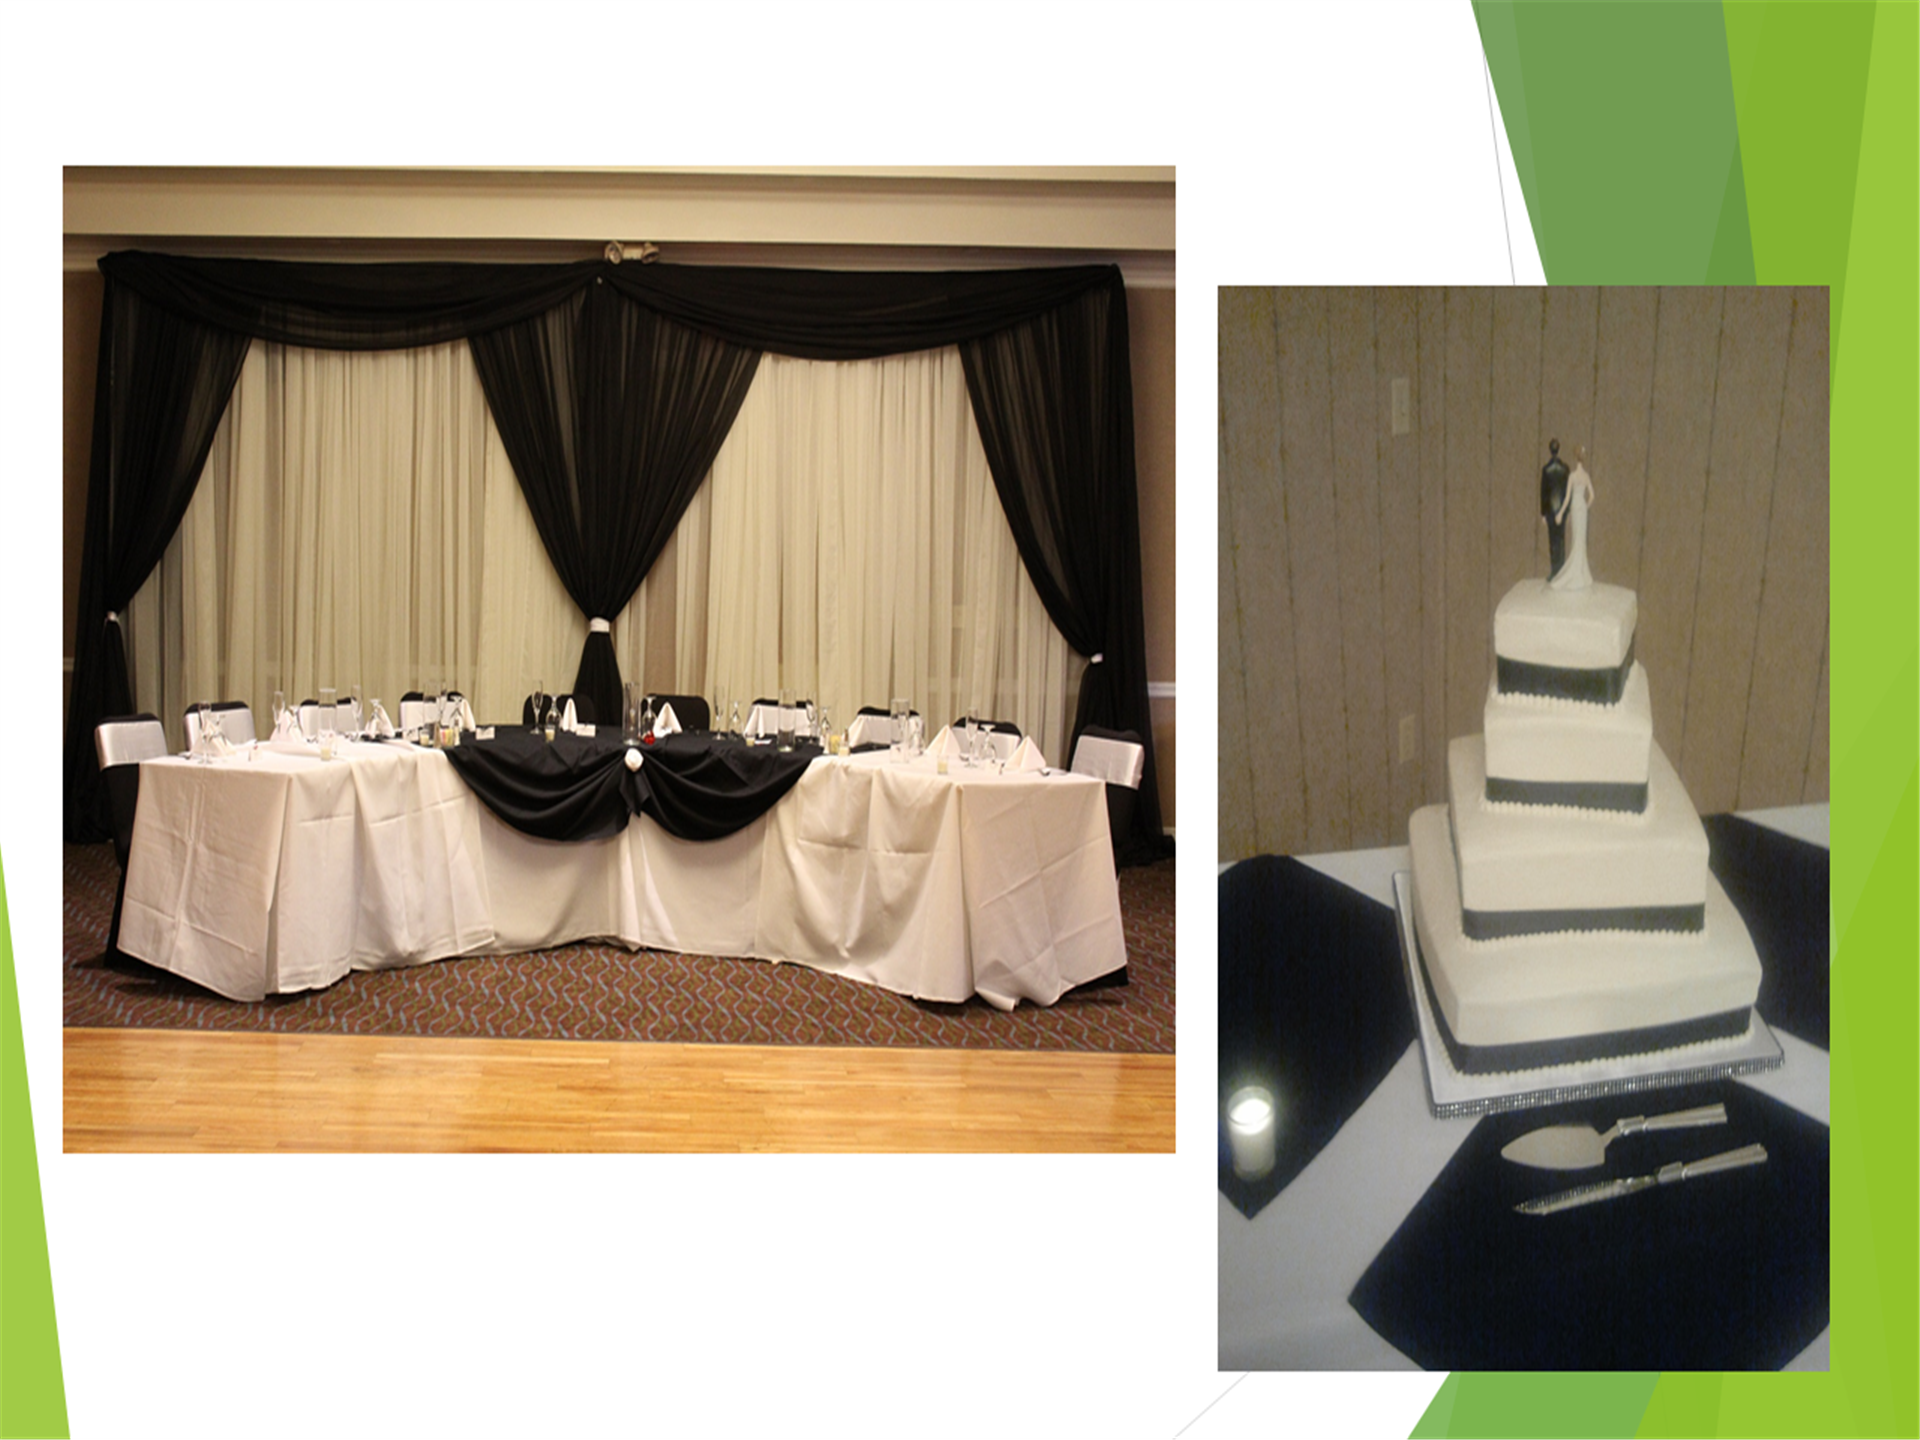 Image of a four layer wedding cake and a bridal party reception table.